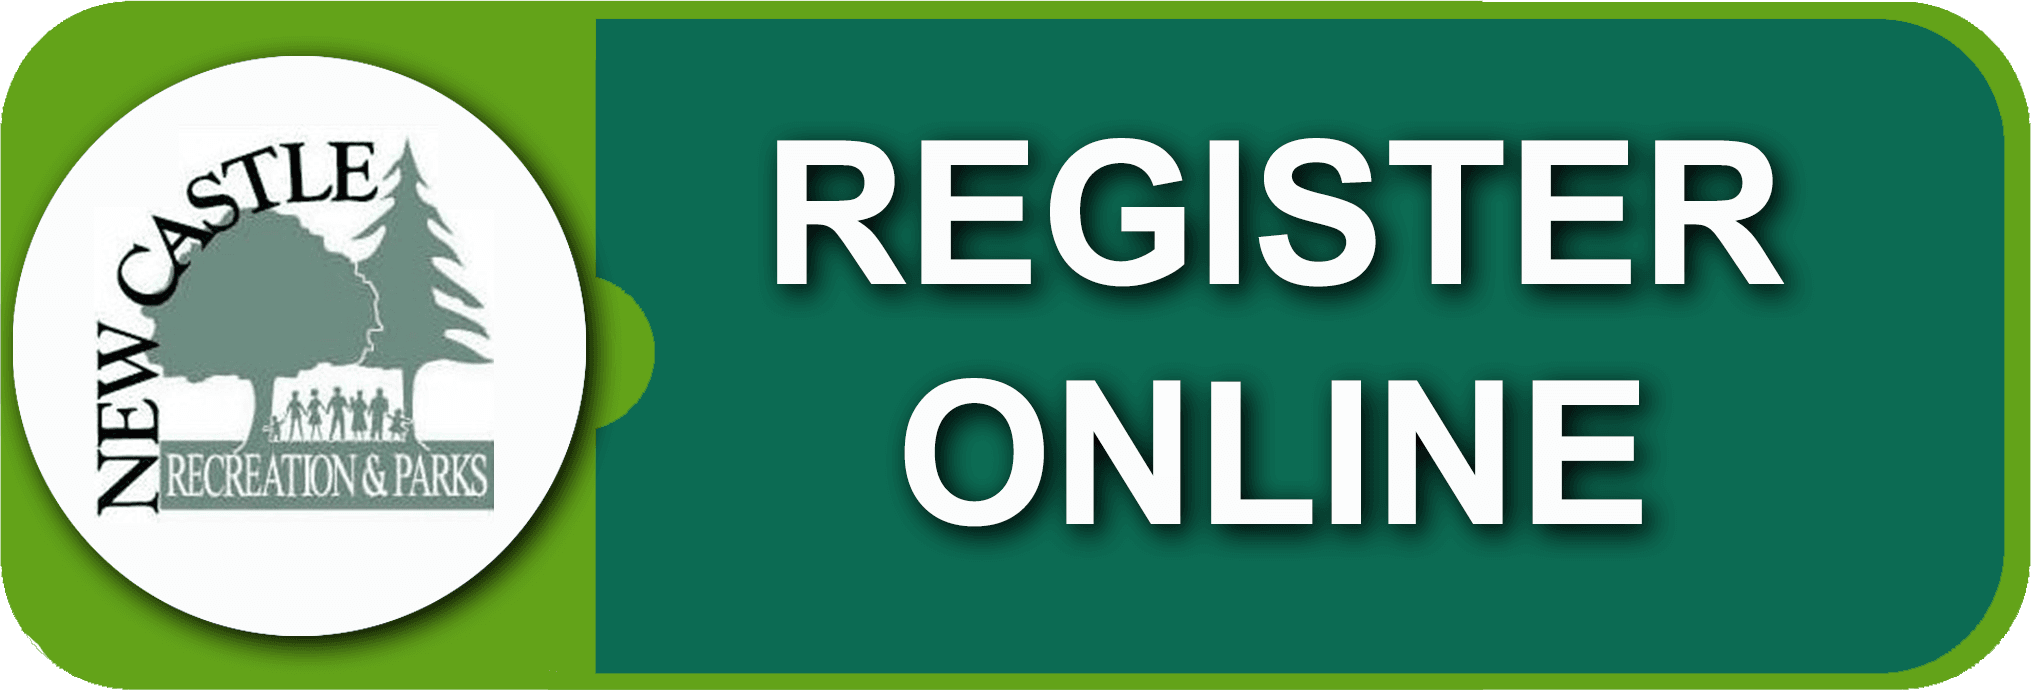 New Castle Recreation Register Online Button